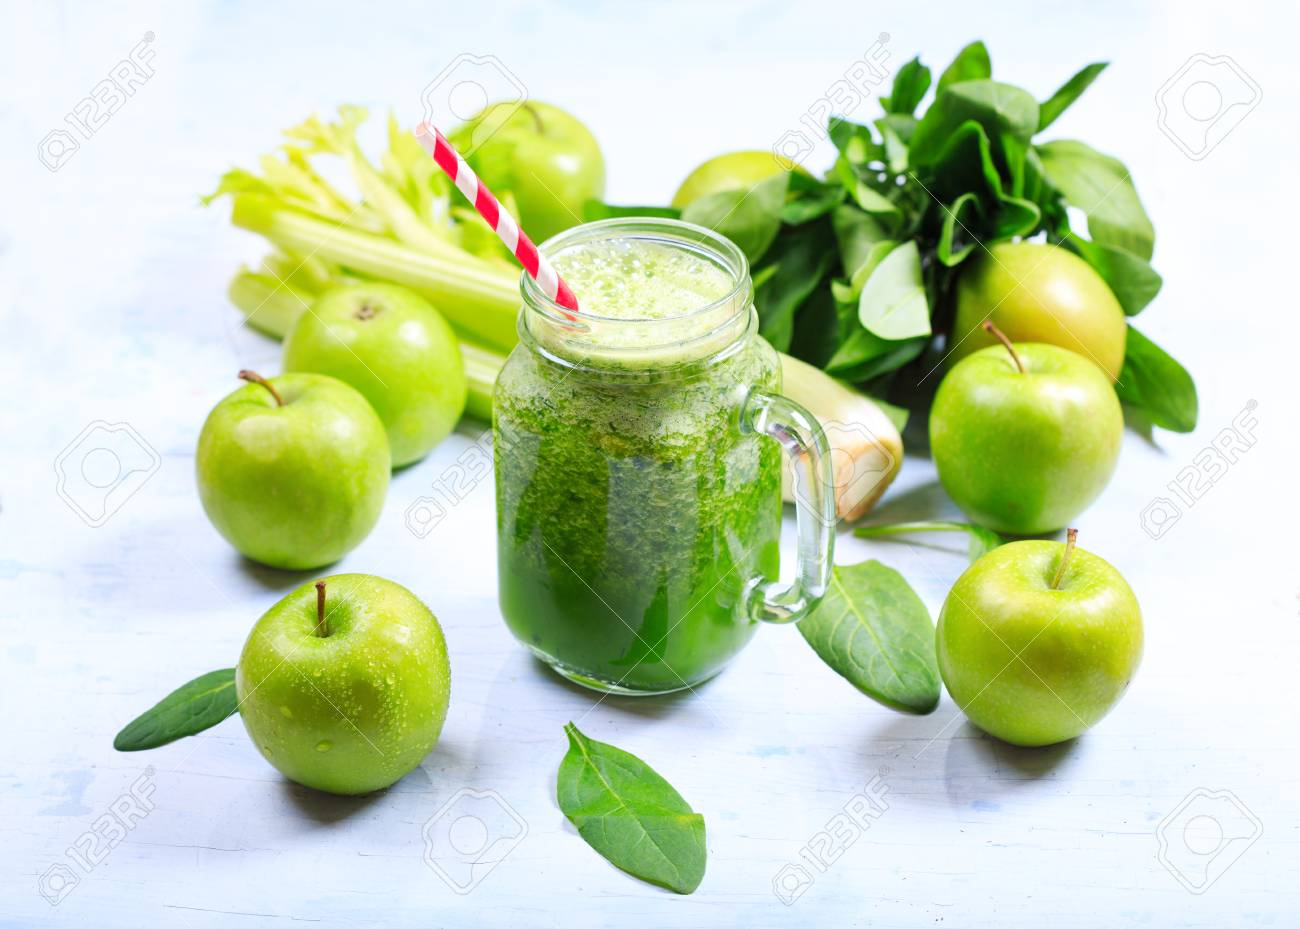 jar of green smoothie with apple, celery and spinach - 52593975